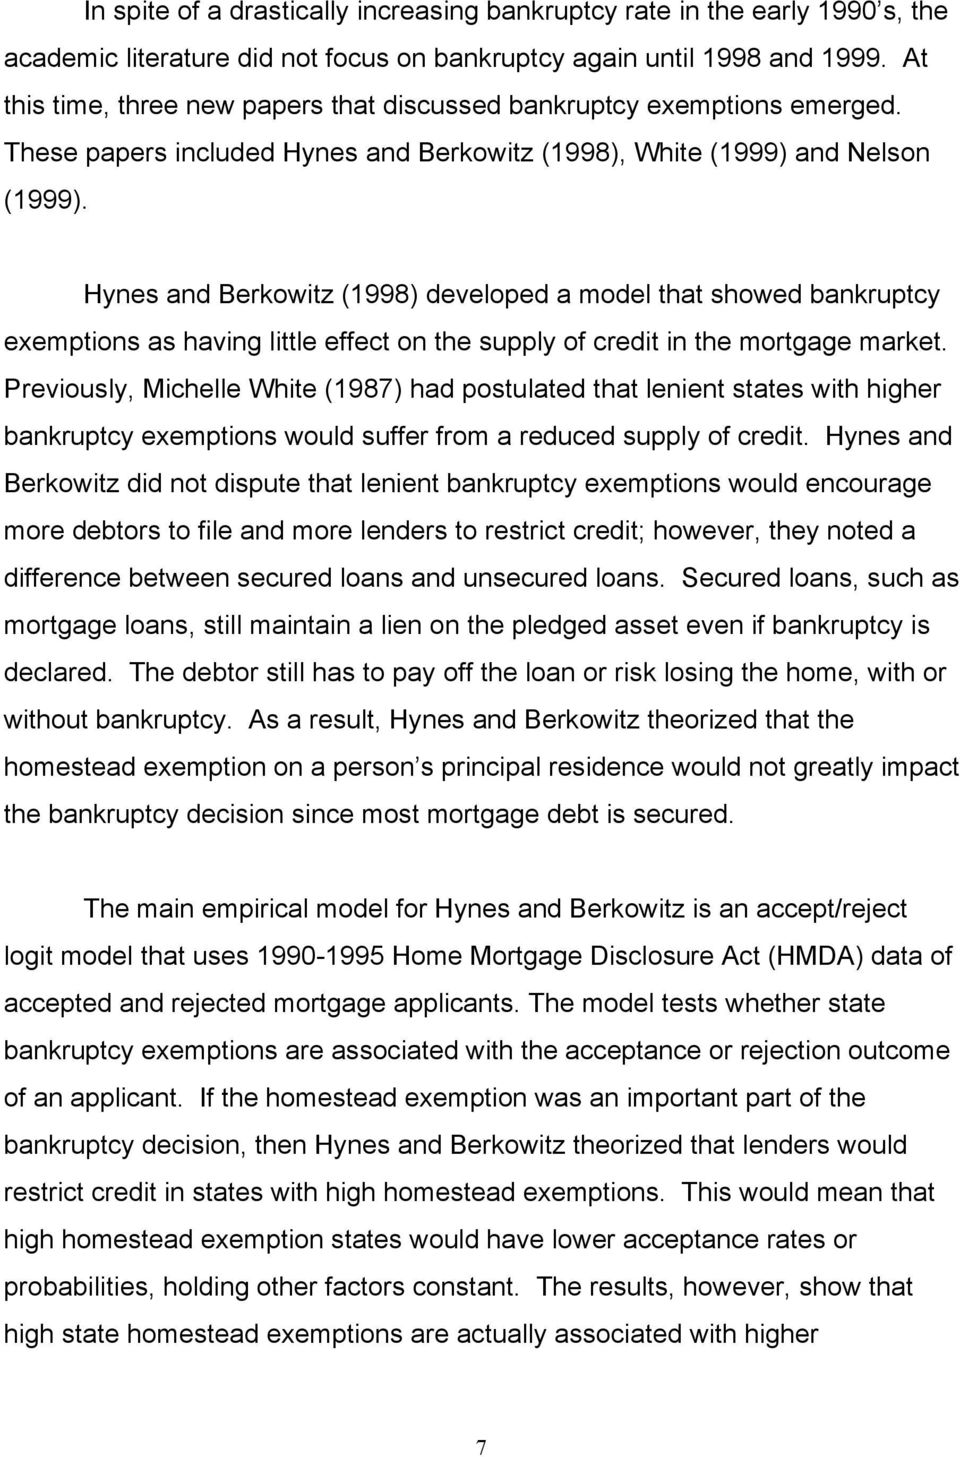 Hynes and Berkowitz (1998) developed a model that showed bankruptcy exemptions as having little effect on the supply of credit in the mortgage market.